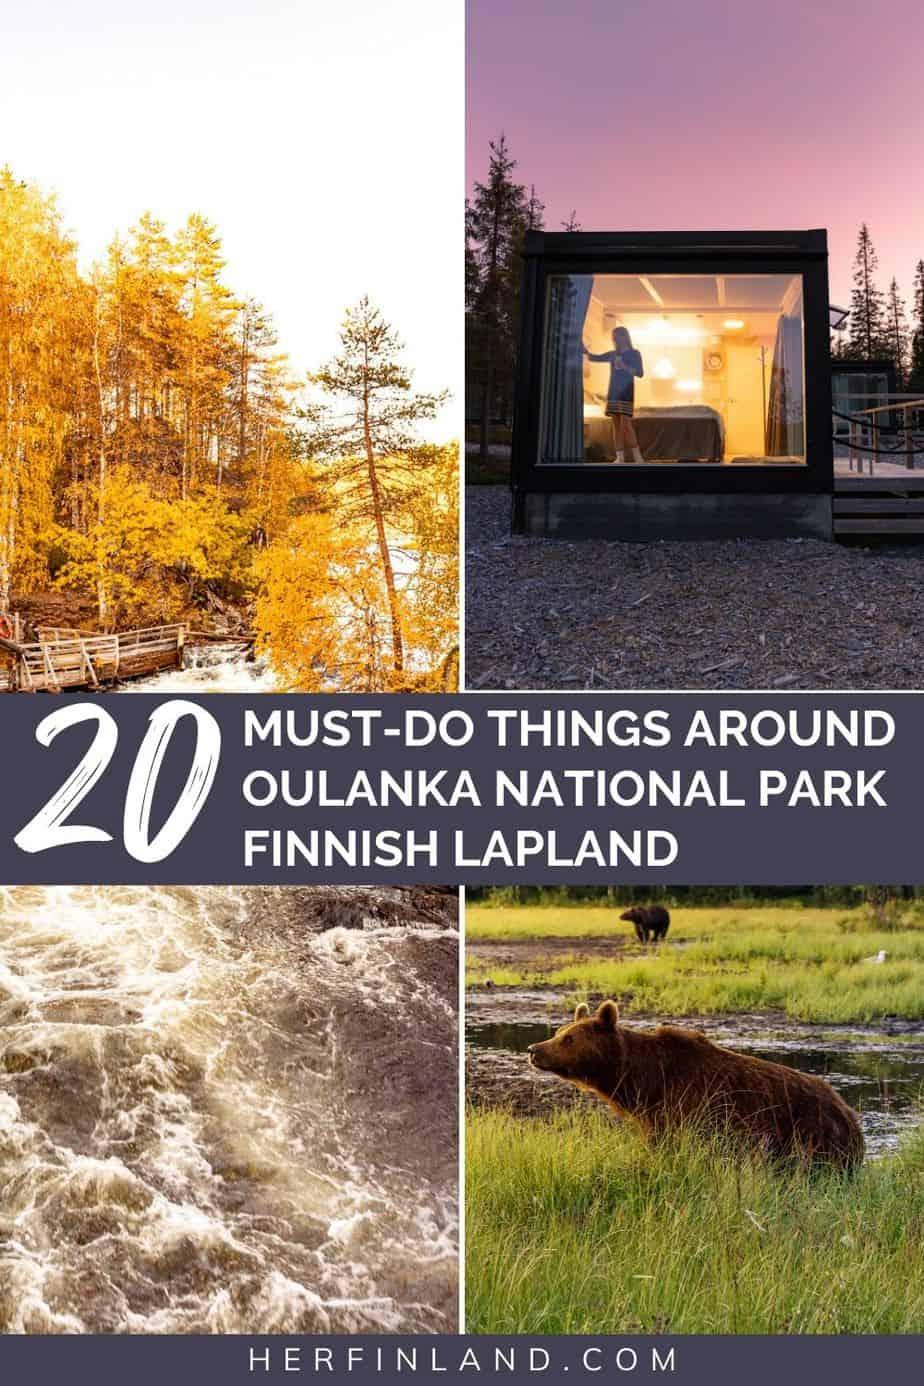 Oulanka National Park tips in Finnish Lapland